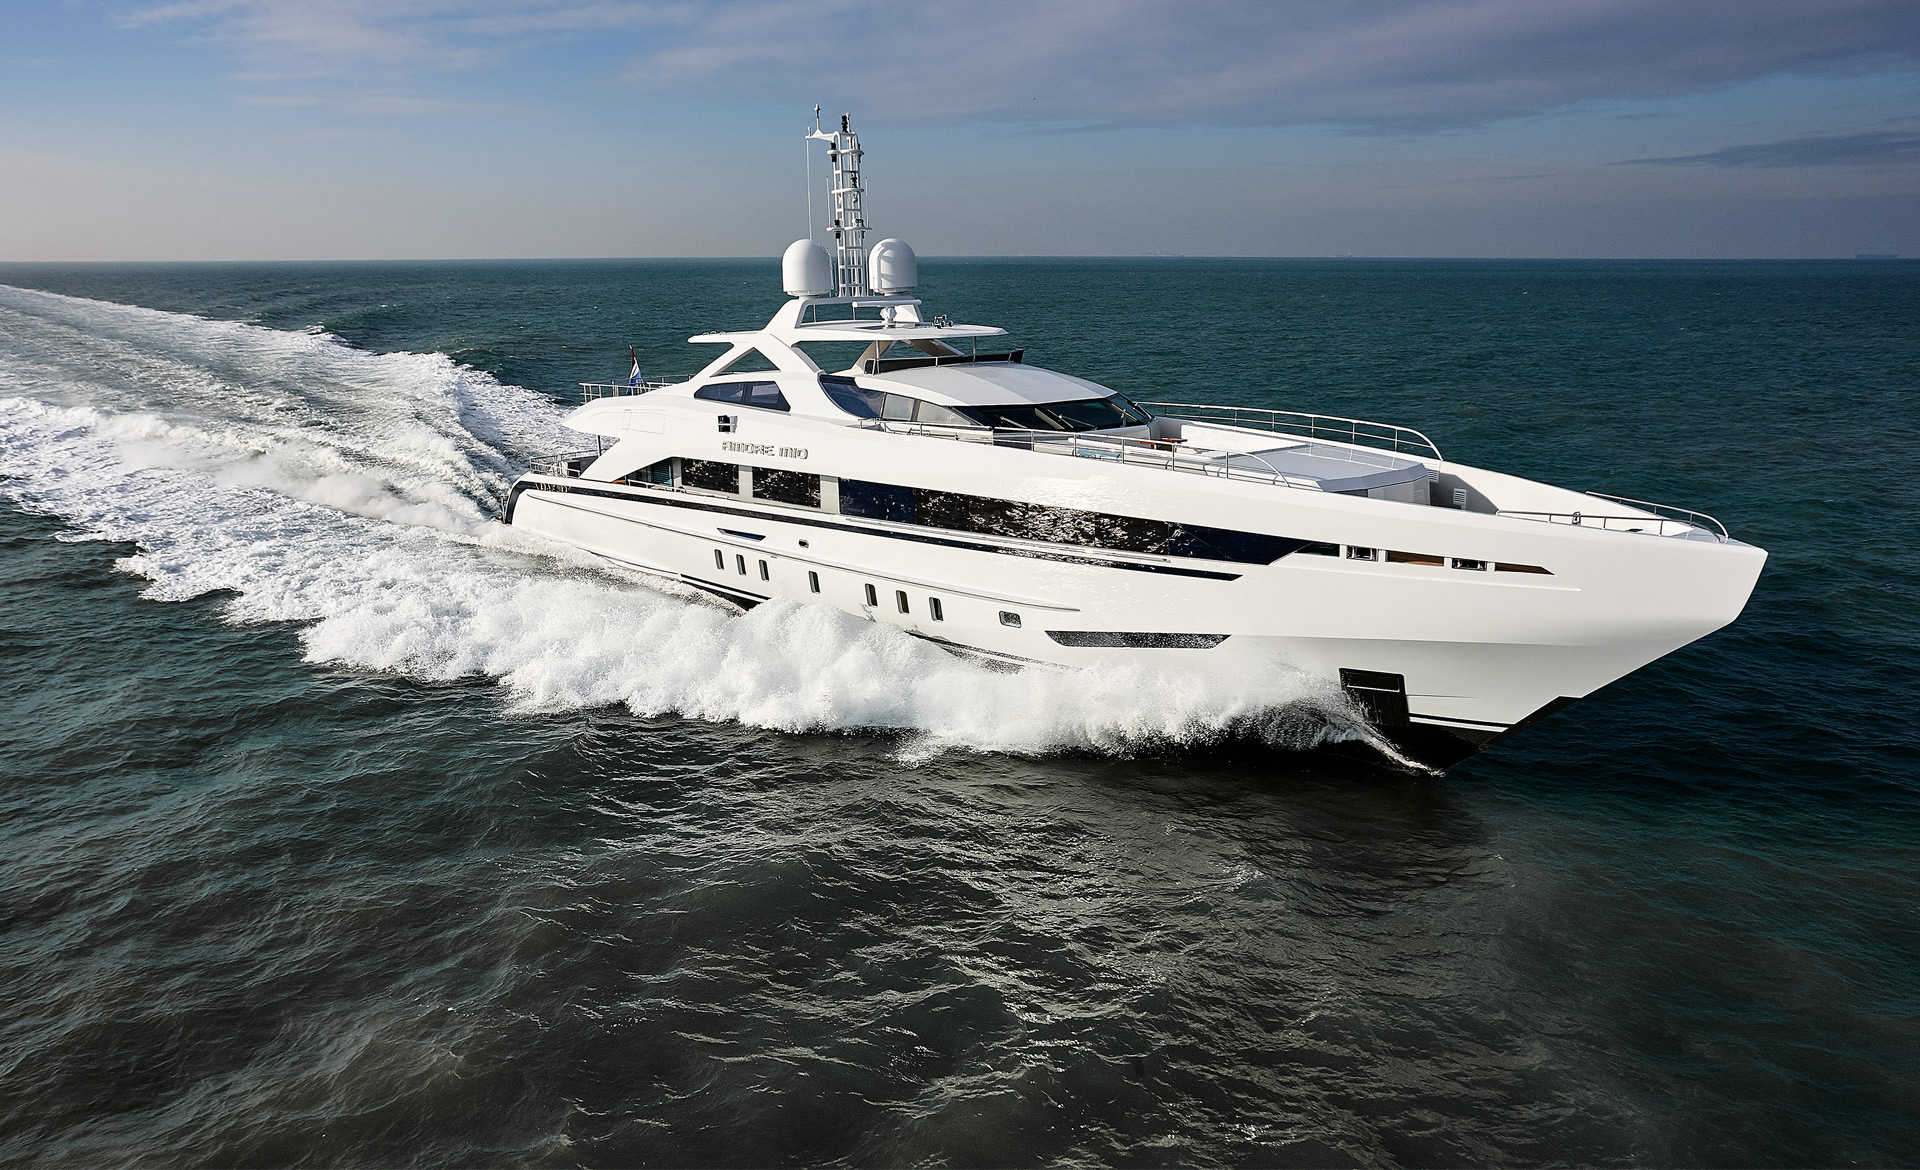 mega luxury yachts sale with Superyacht Amore Mio on Superyacht Amore Mio besides United States in addition Sinot Nature Yacht Monaco 09 23 2017 likewise Render E as well Mega Yacht Concept Design 105m 4 respond.